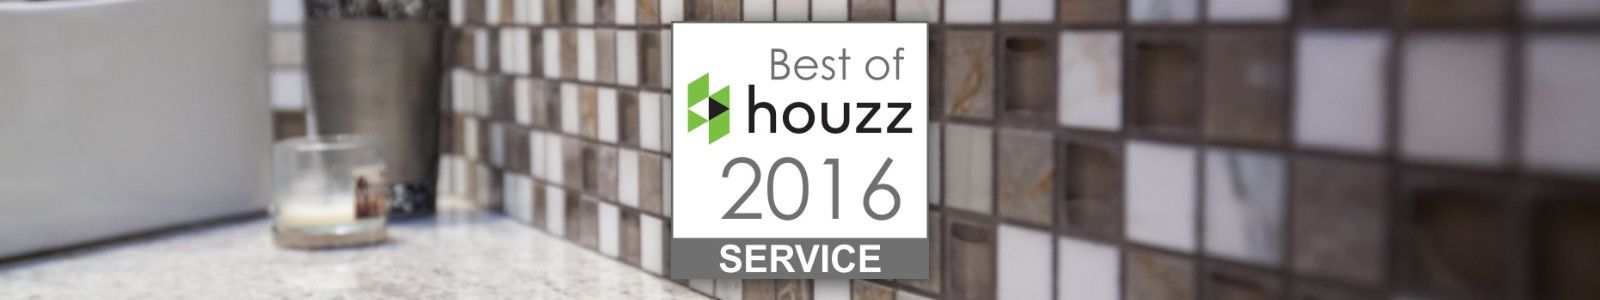 Tile w/ Best of Houzz